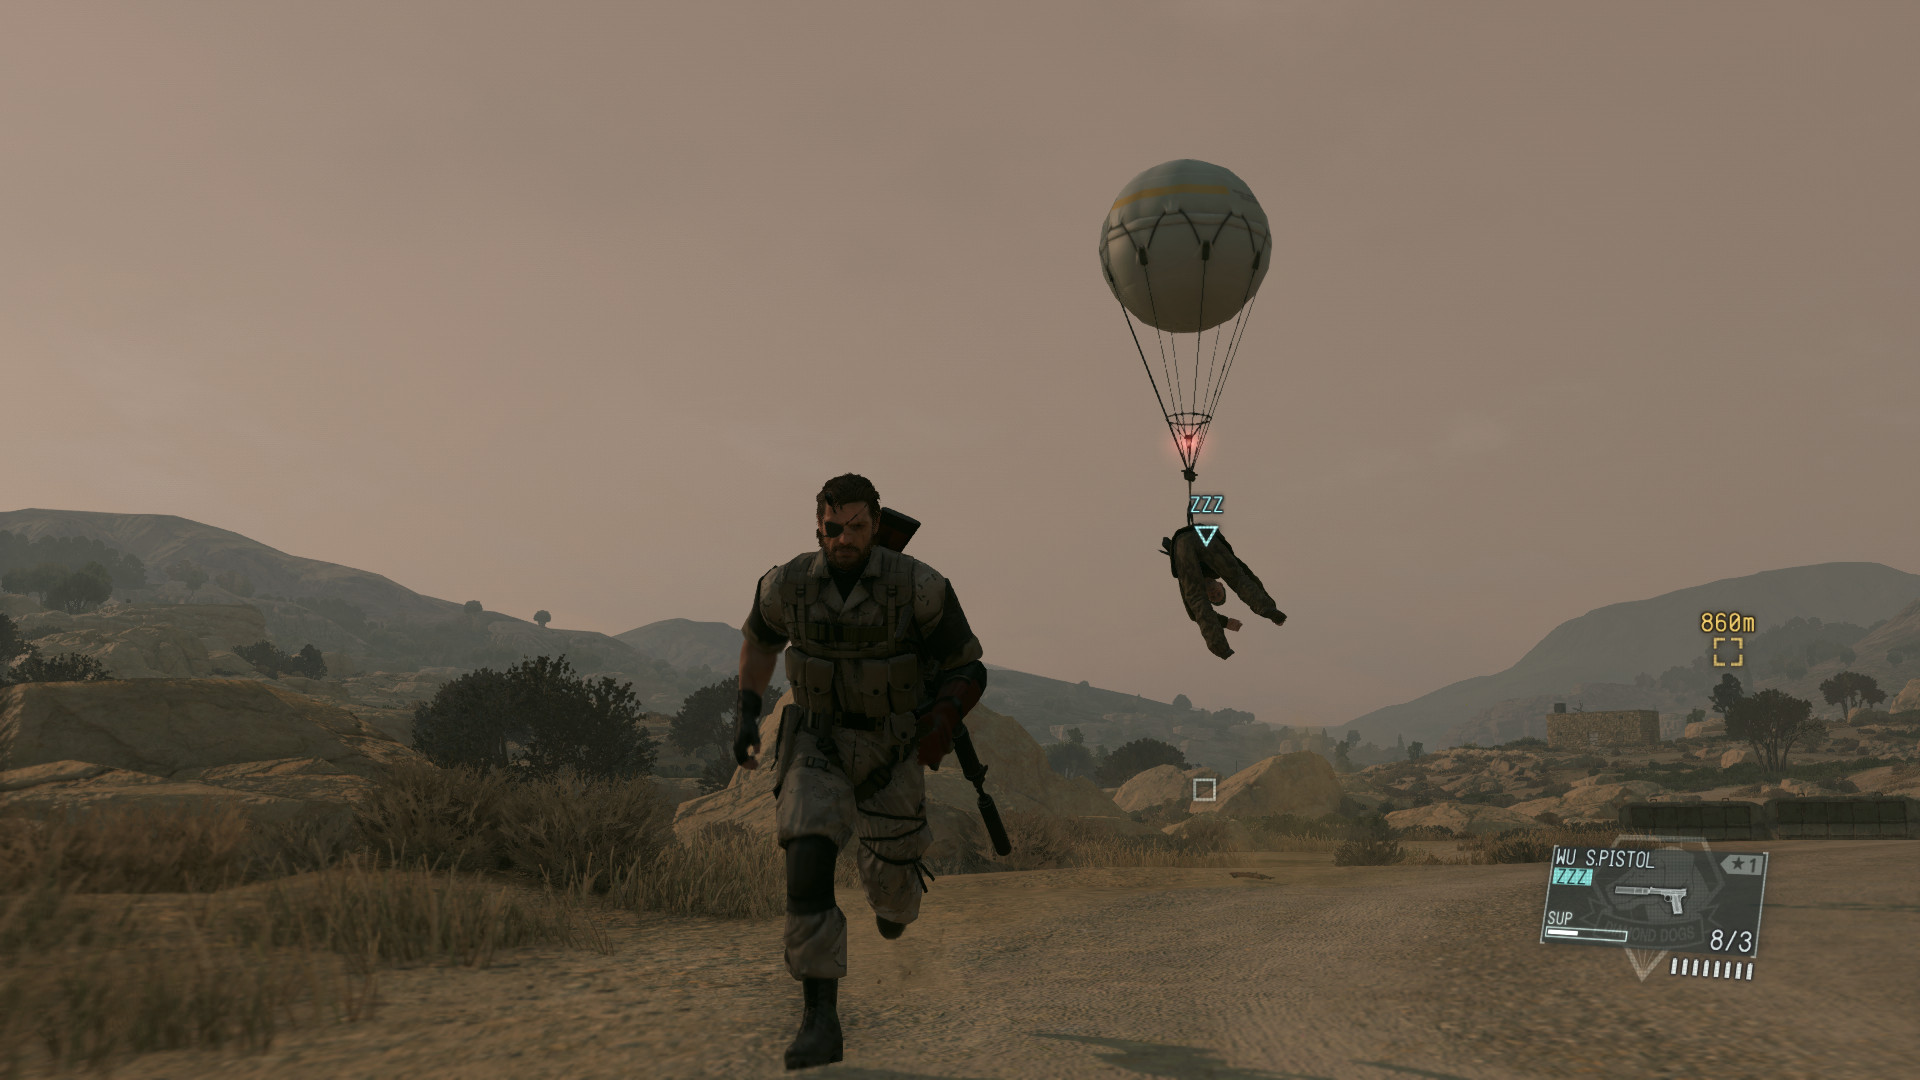 Every day is free balloon day when Big Boss is around!